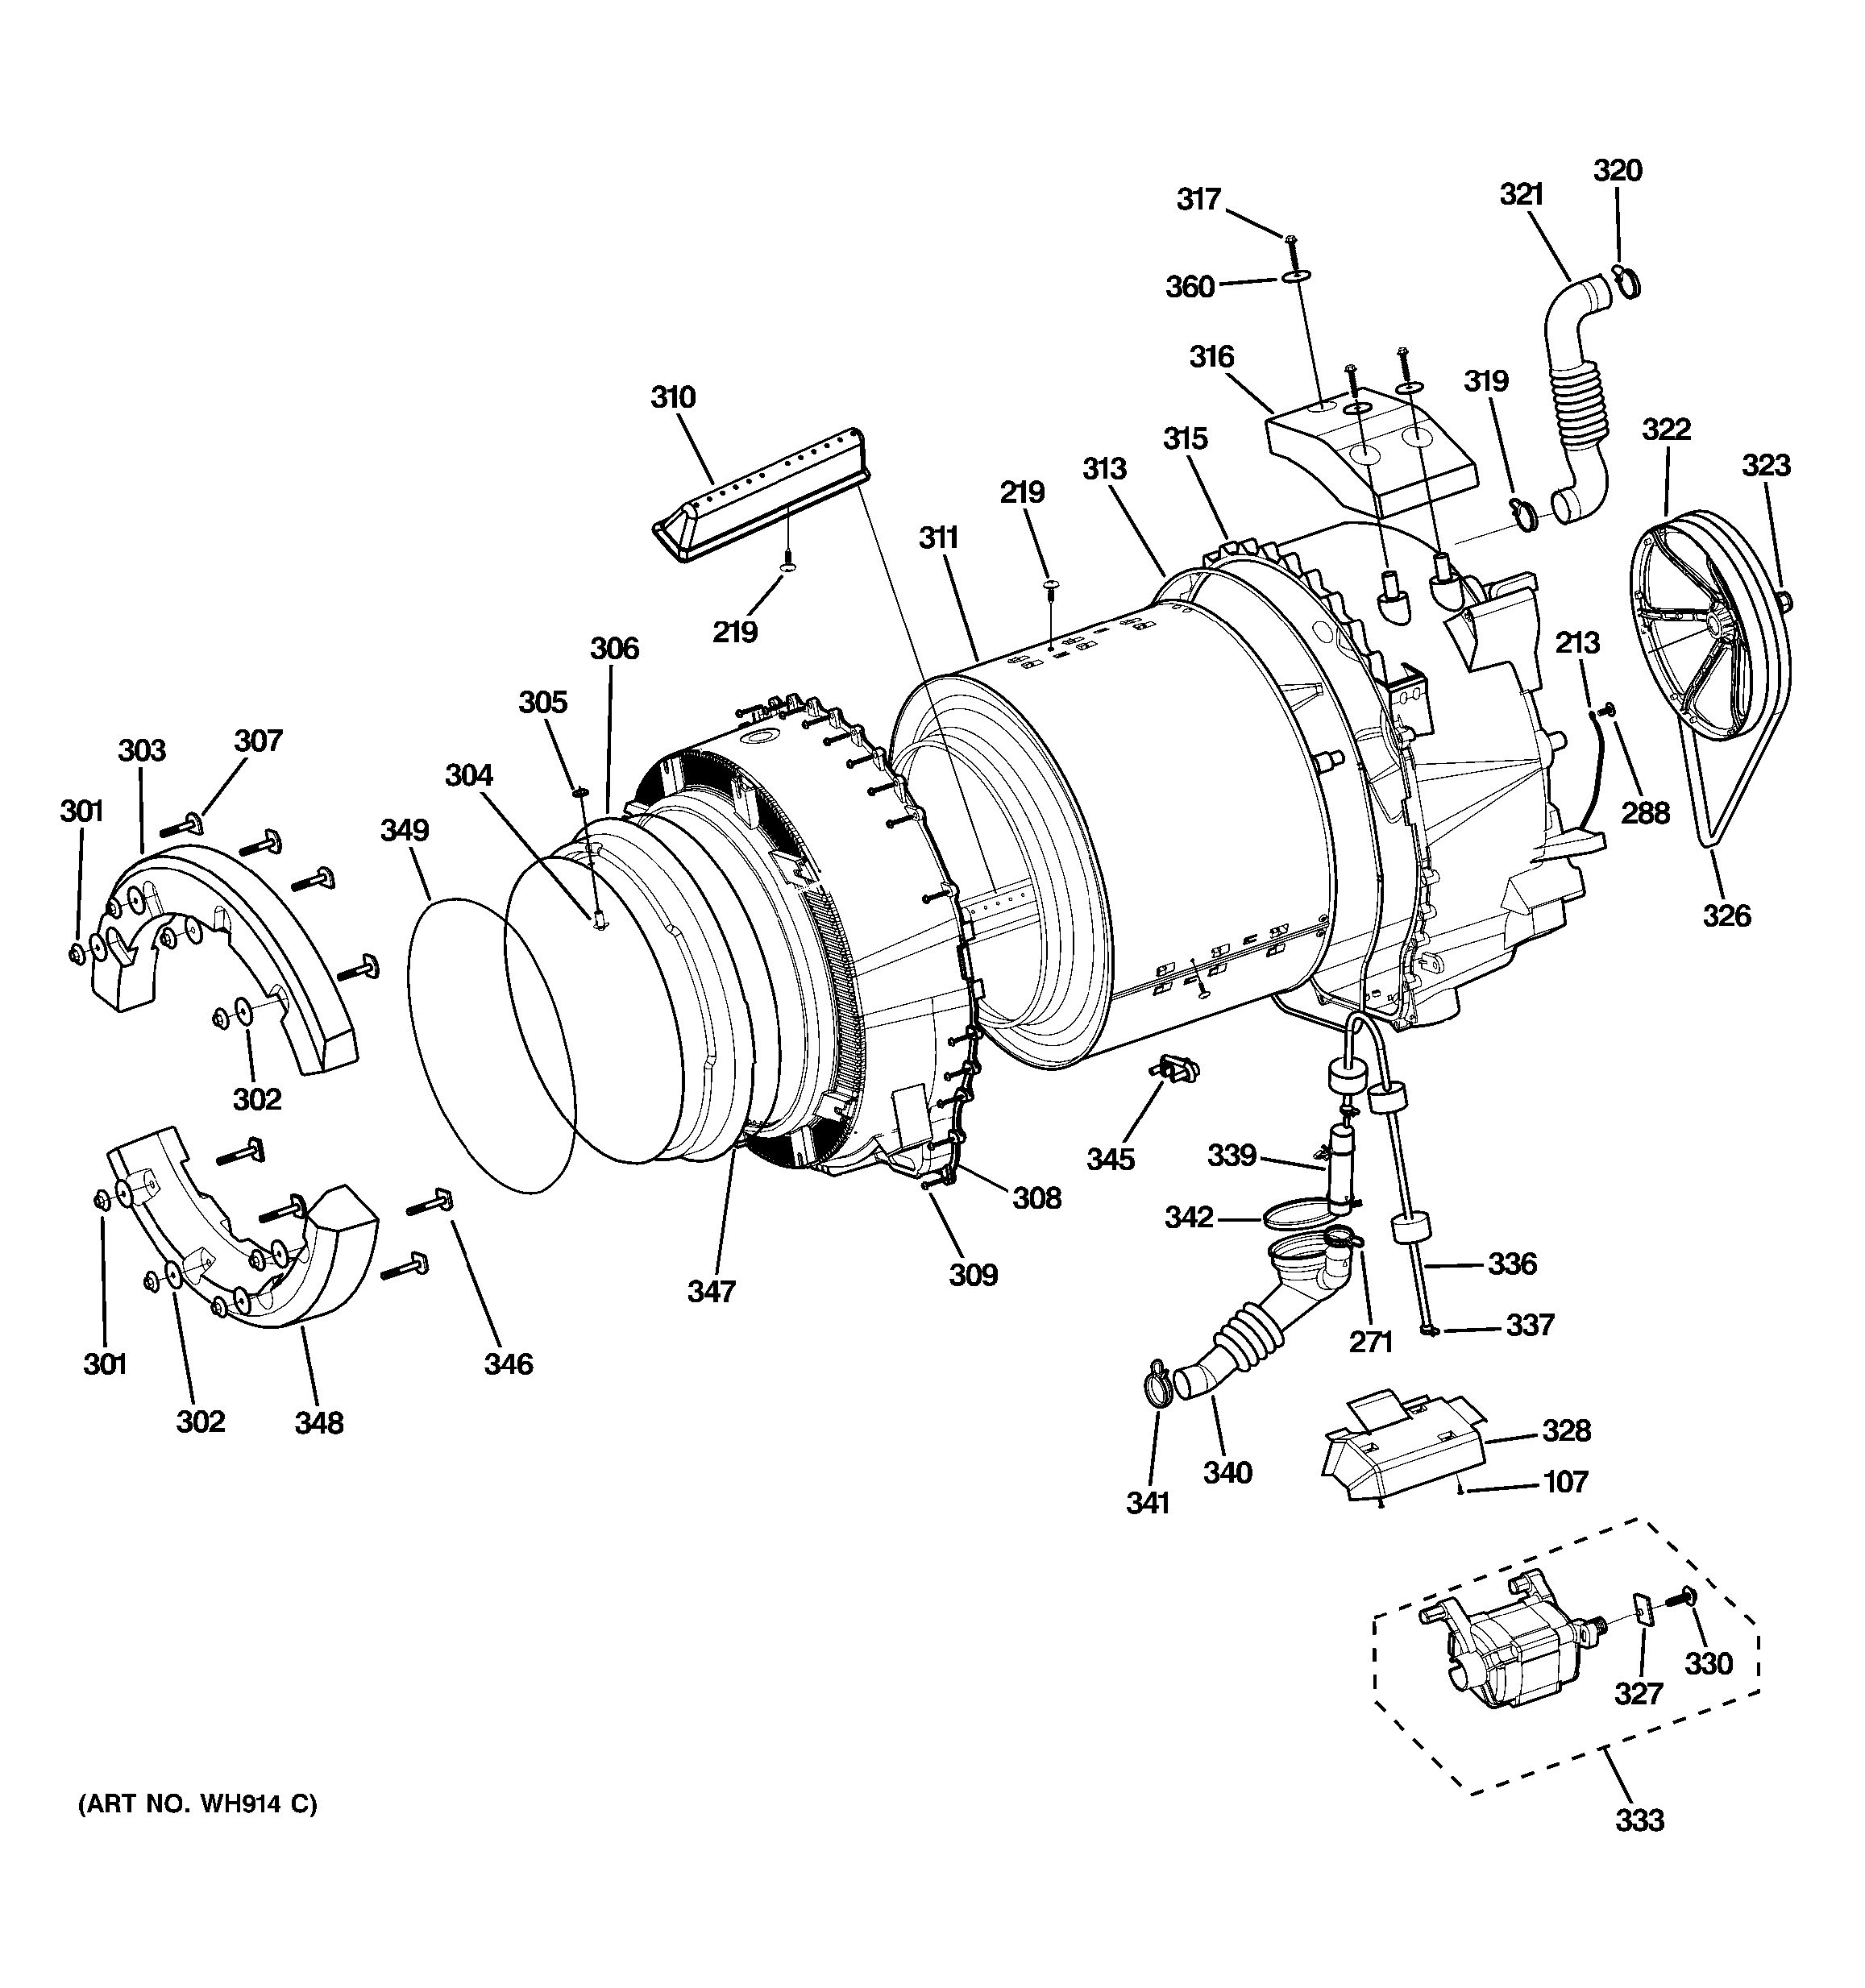 Assembly View For Tub Amp Motor Wbvh5300k0ww